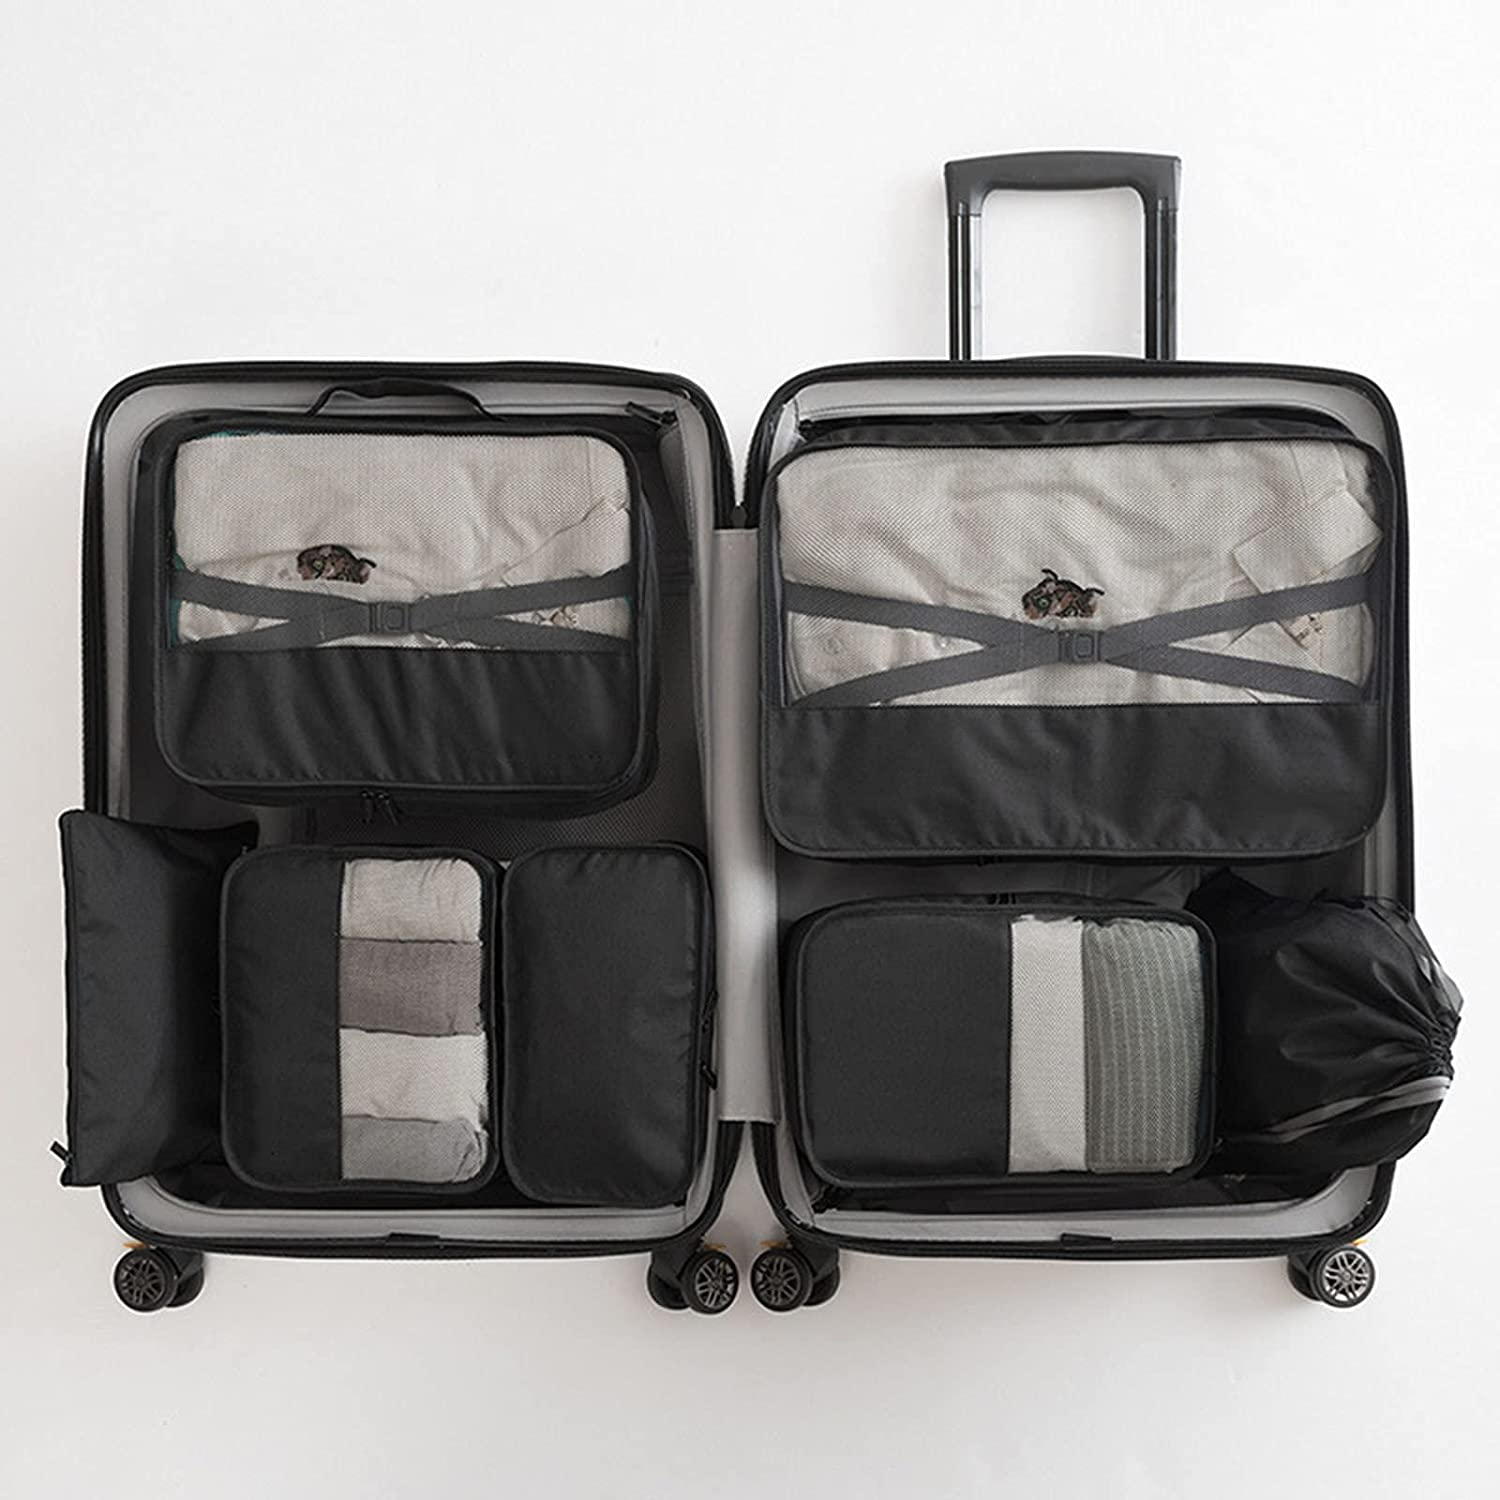 Packing Cubes 7 Pcs Suitcases Storage for Bags Max 59% OFF Max 68% OFF